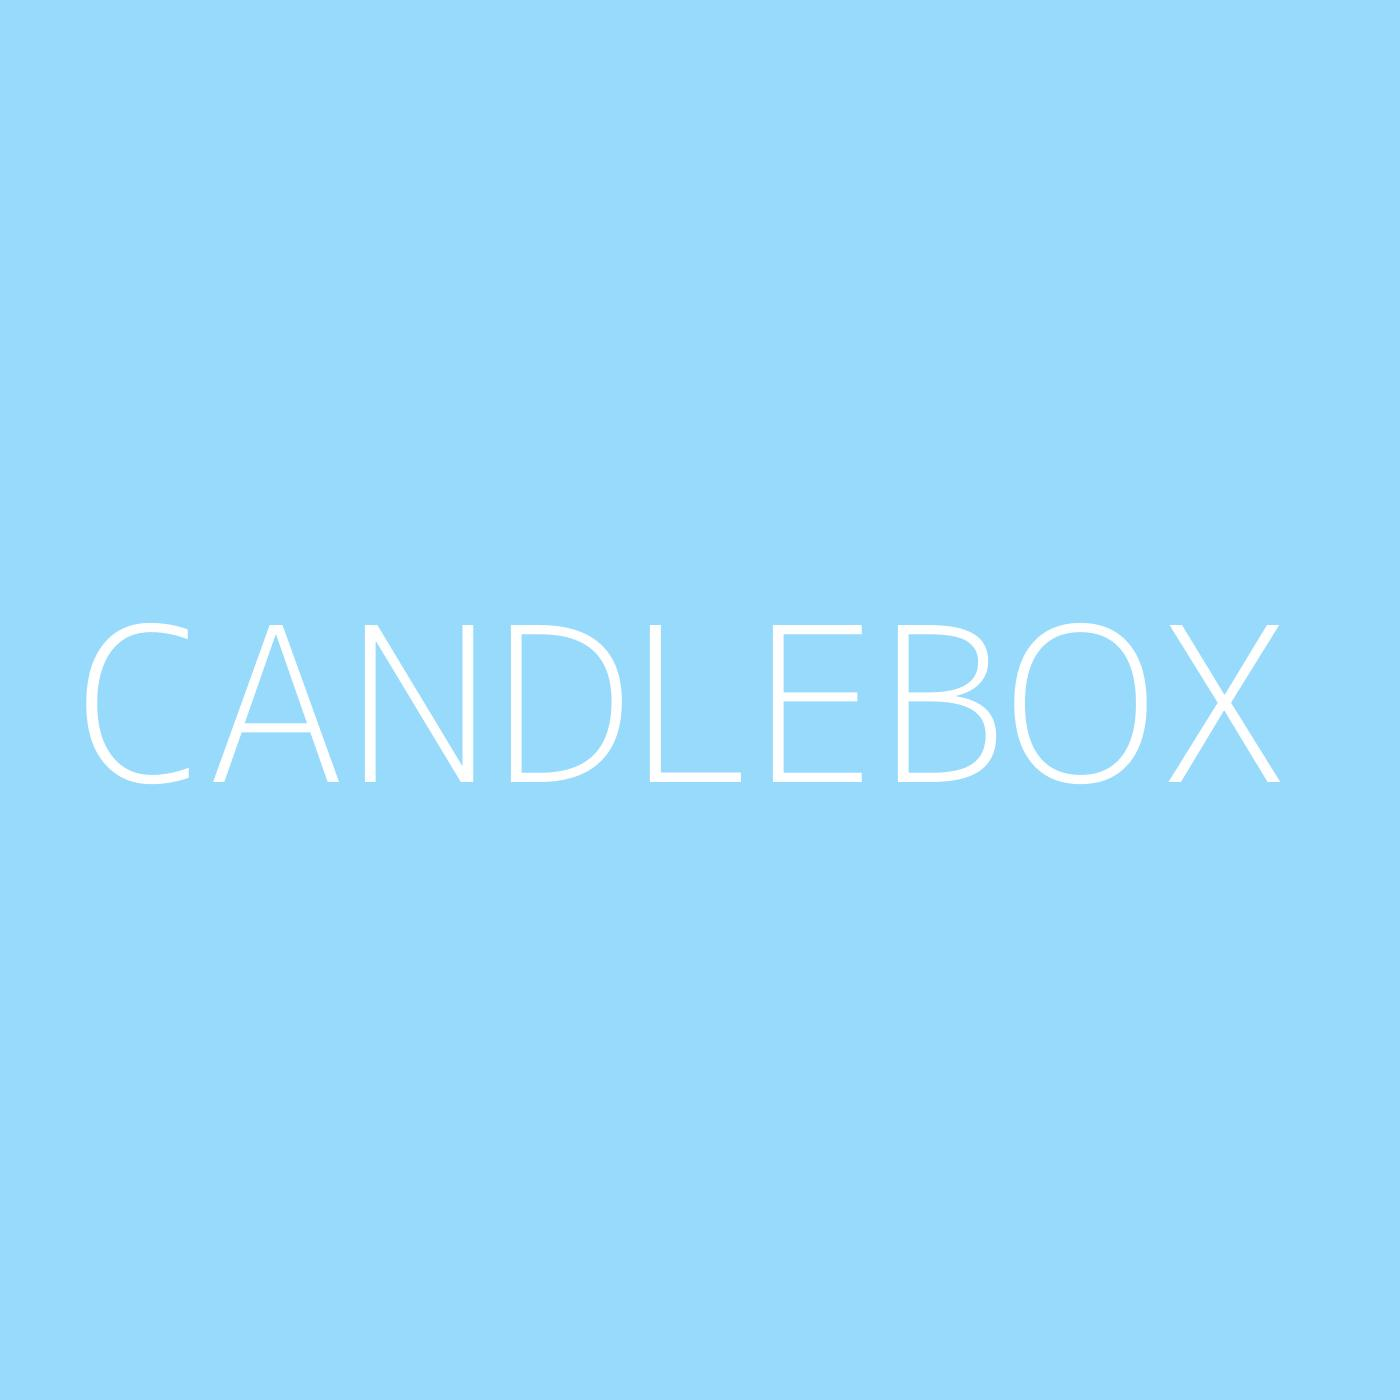 Candlebox Playlist Artwork